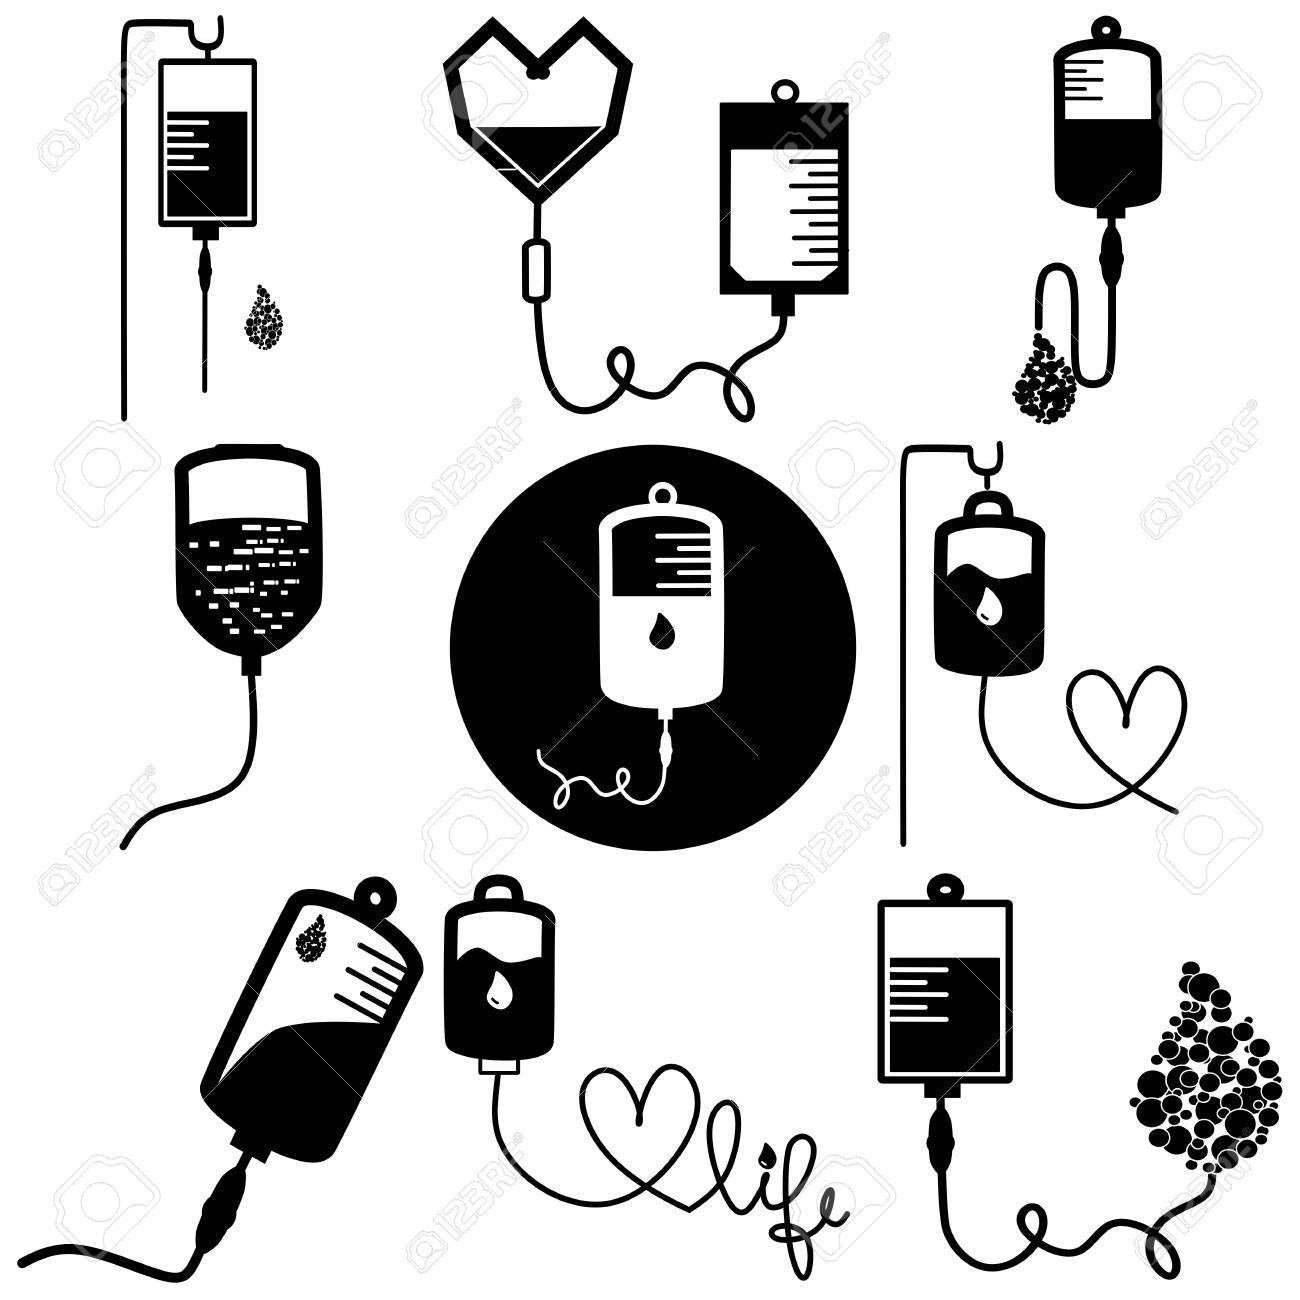 Infusion icon. Intravenous bag, blood, drip. Medical help concept. Vector illustration can be used for topics like hospital, therapy, chemotherapy. Iv, infuse, blood bag. Tube and blood collection. - 140711557